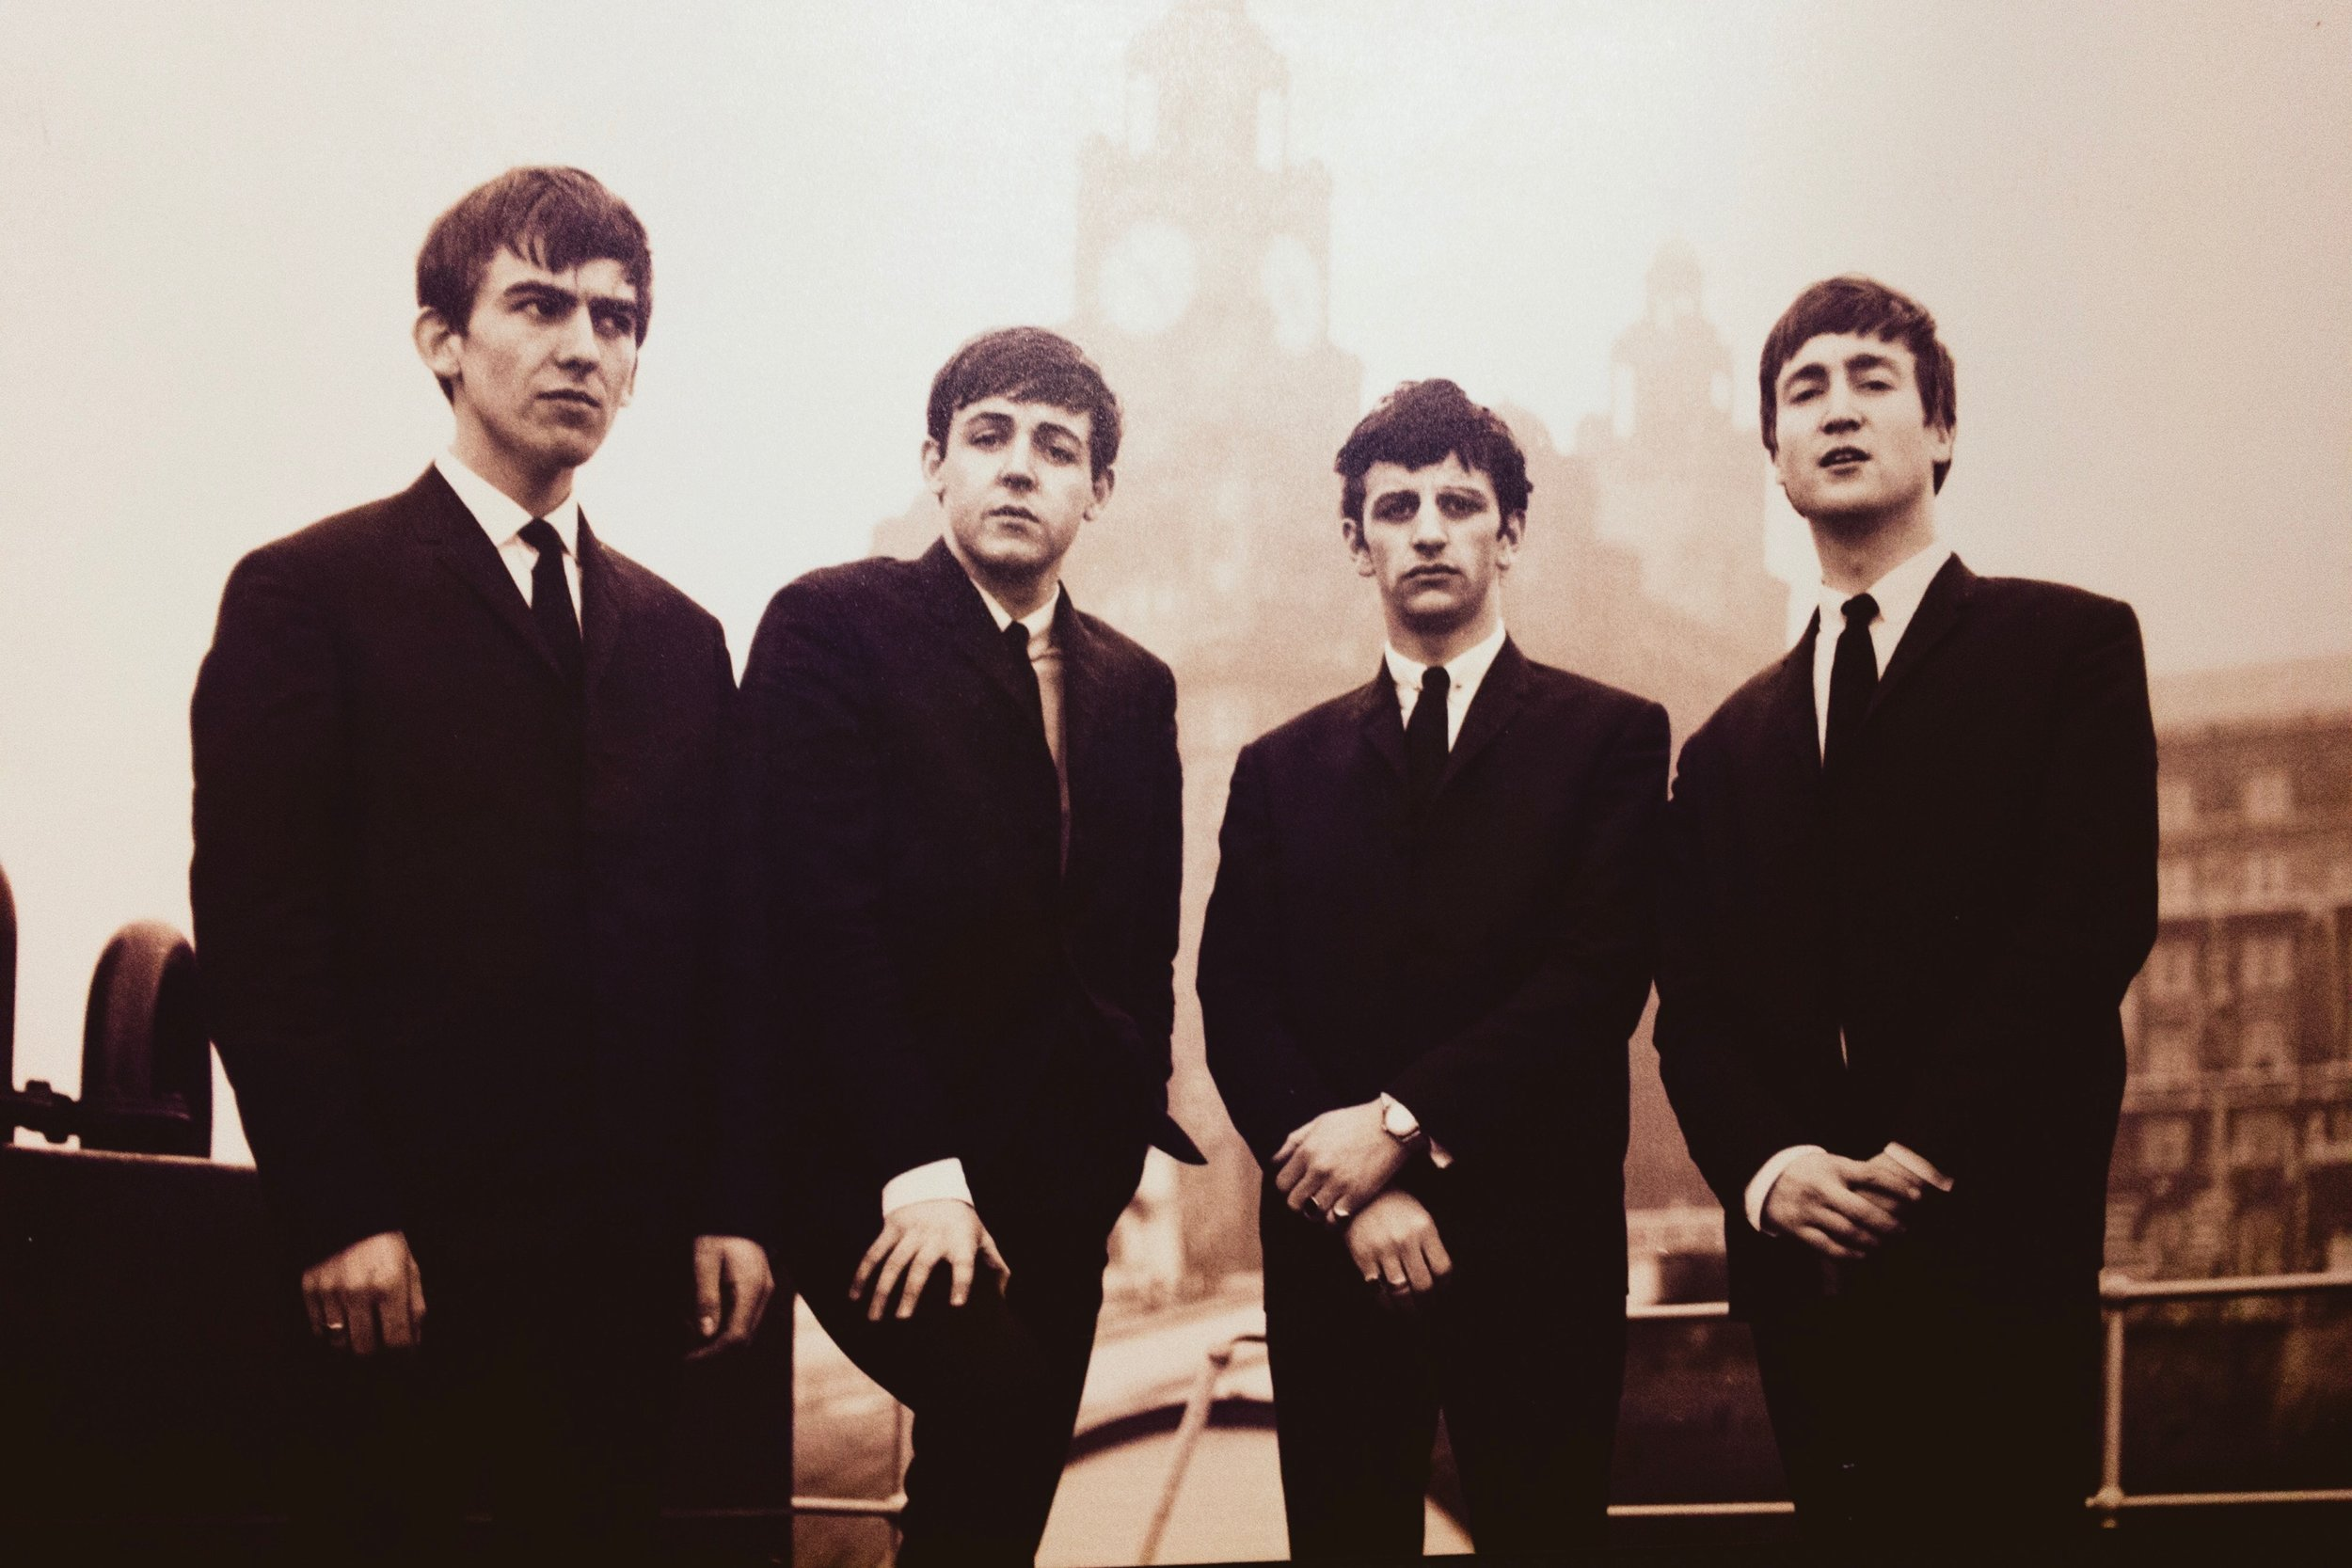 The Beatles looking dapper and kinda serious.